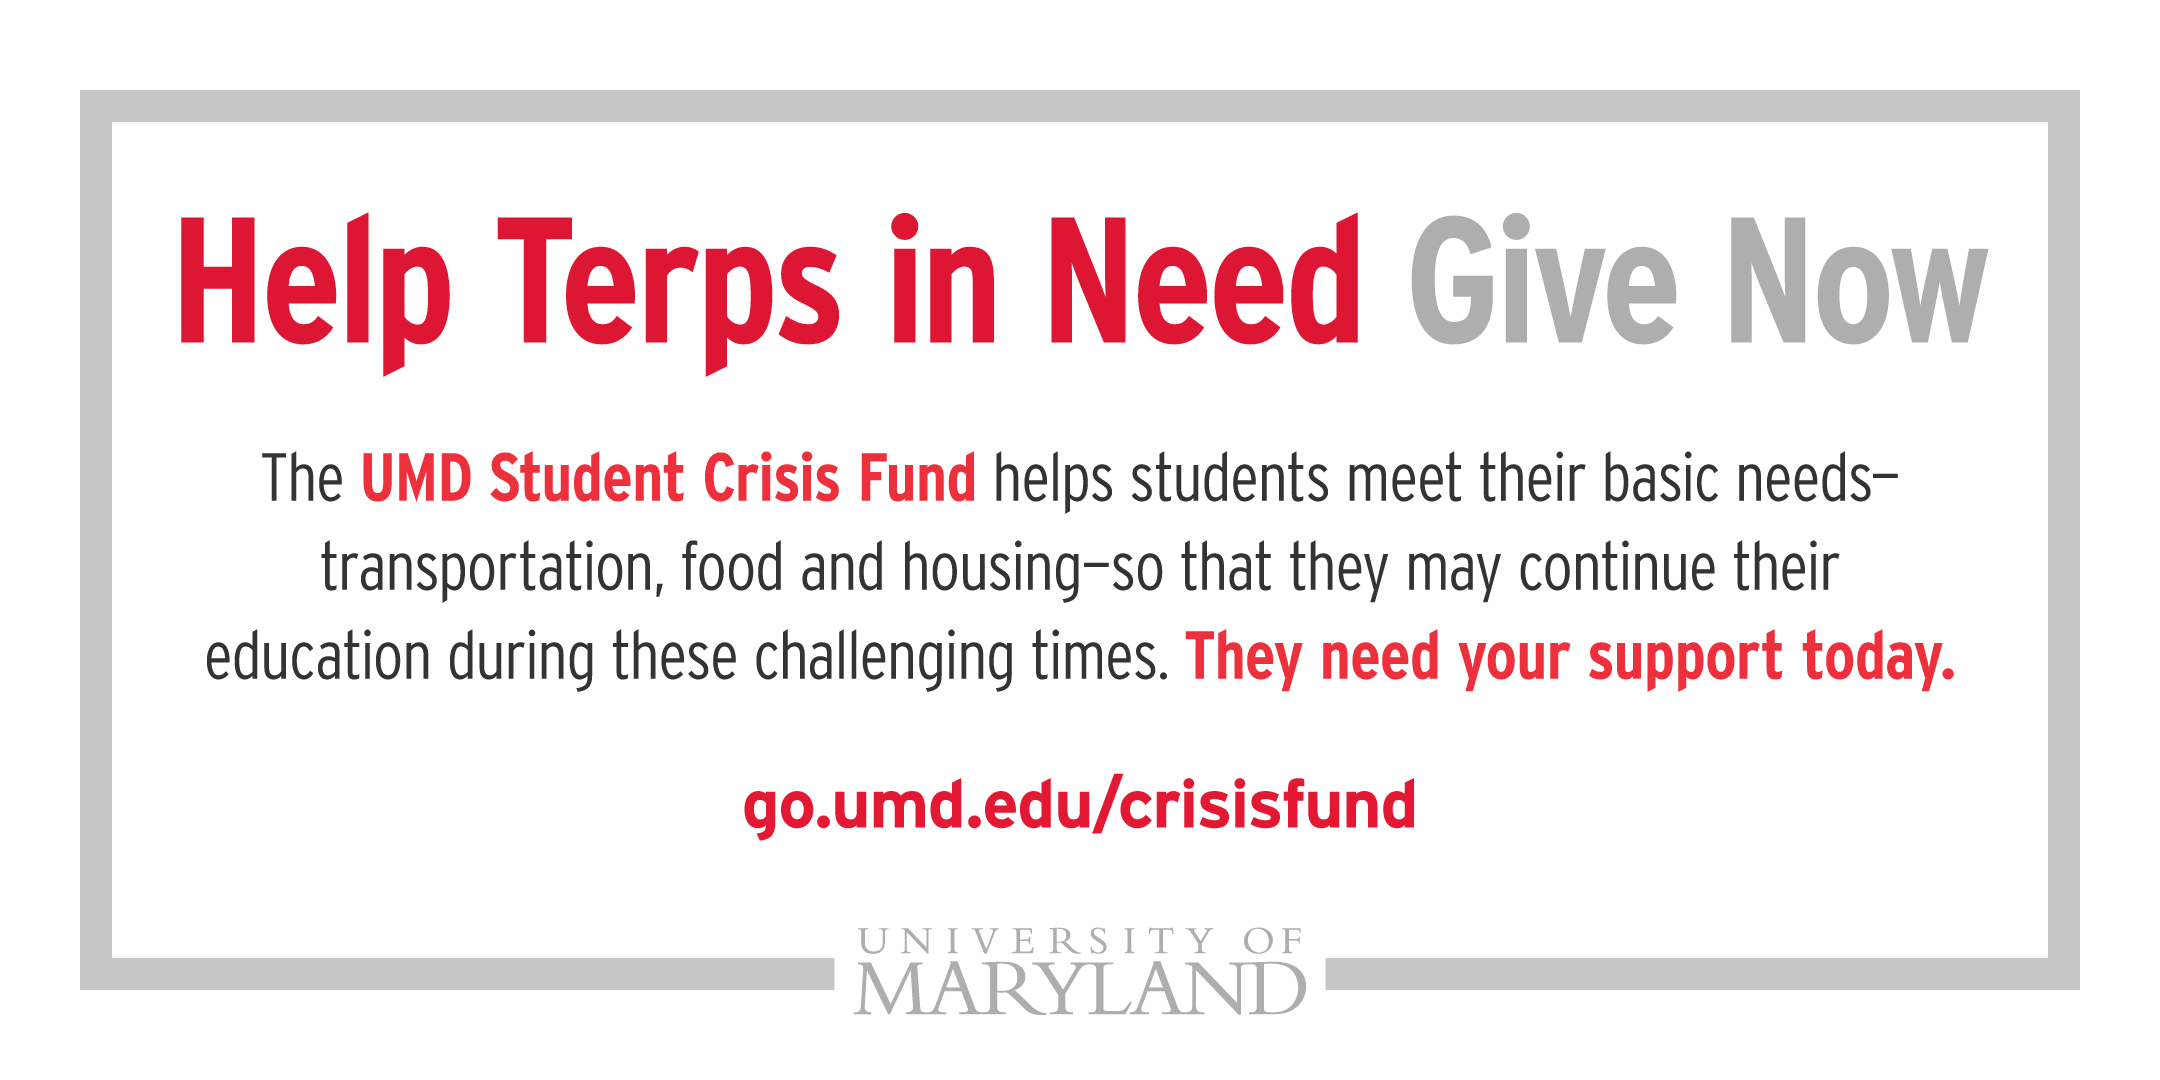 Help Terps In Need Give Now